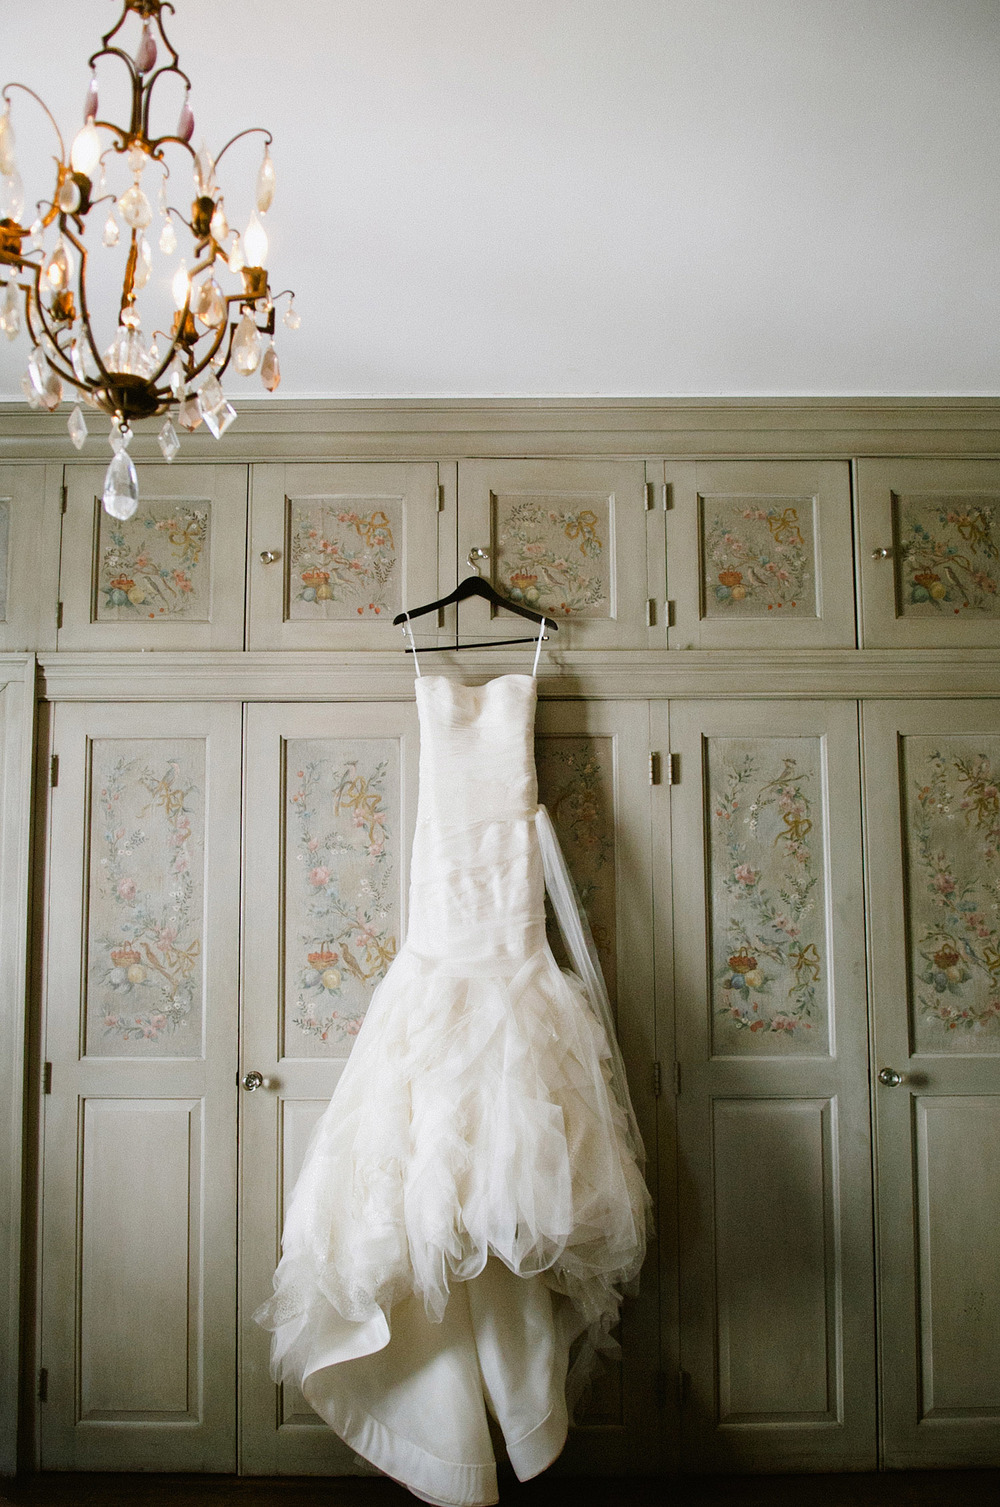 the wedding dress hangs in one of the rooms at the italian villa The Villa Terrace where Destination wedding photographer Lexia Frank photographs this italian destination wedding entirely on film as she is a wedding film photographer